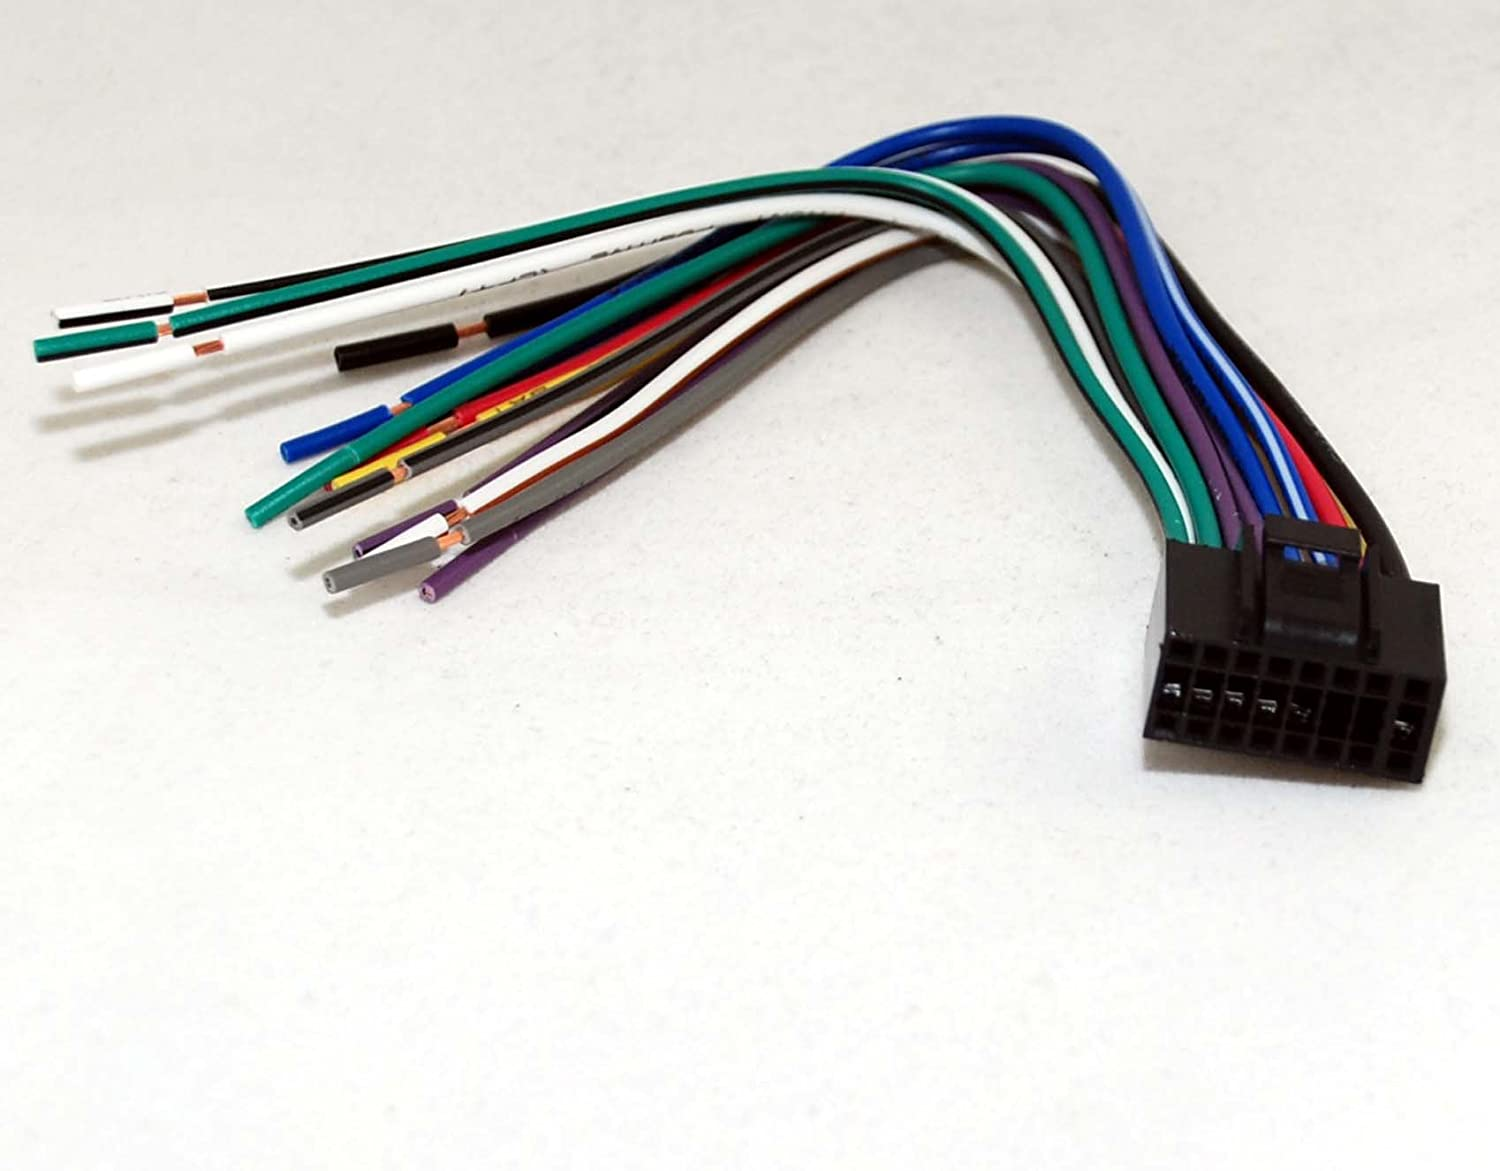 61Rzeblbo0L._SL1500_ amazon com xtenzi harness for dual 16 pin wire harness xdvd8181 dual wiring harness at virtualis.co